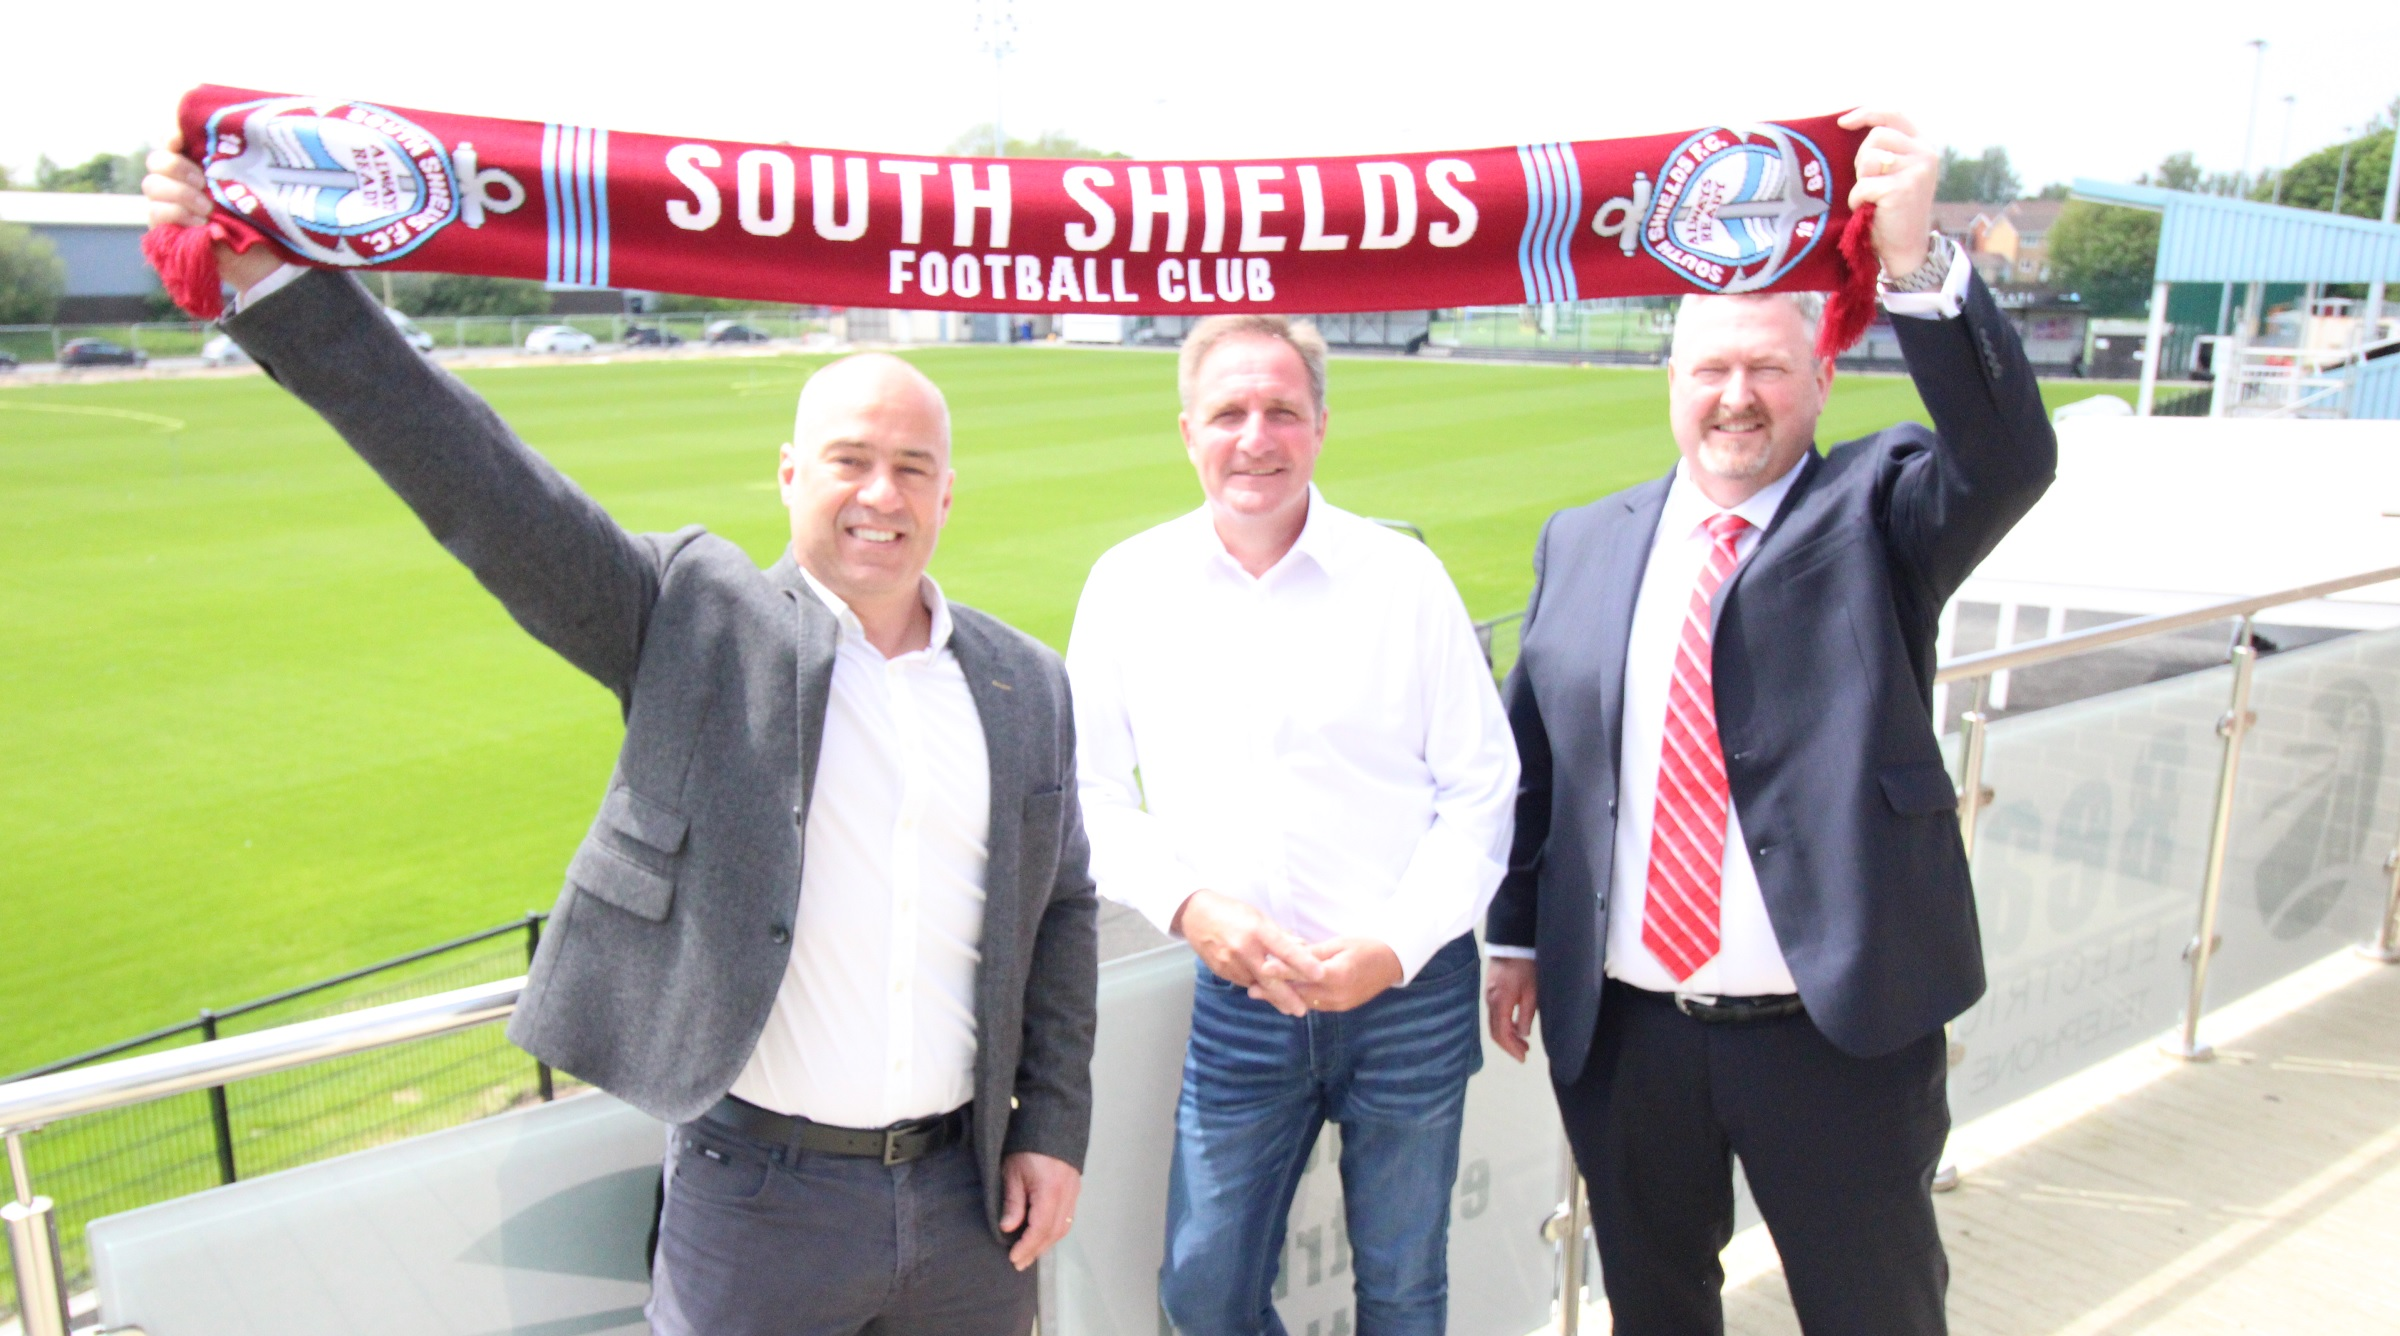 CFS becomes first-team shirt sponsor as exciting partnership announced